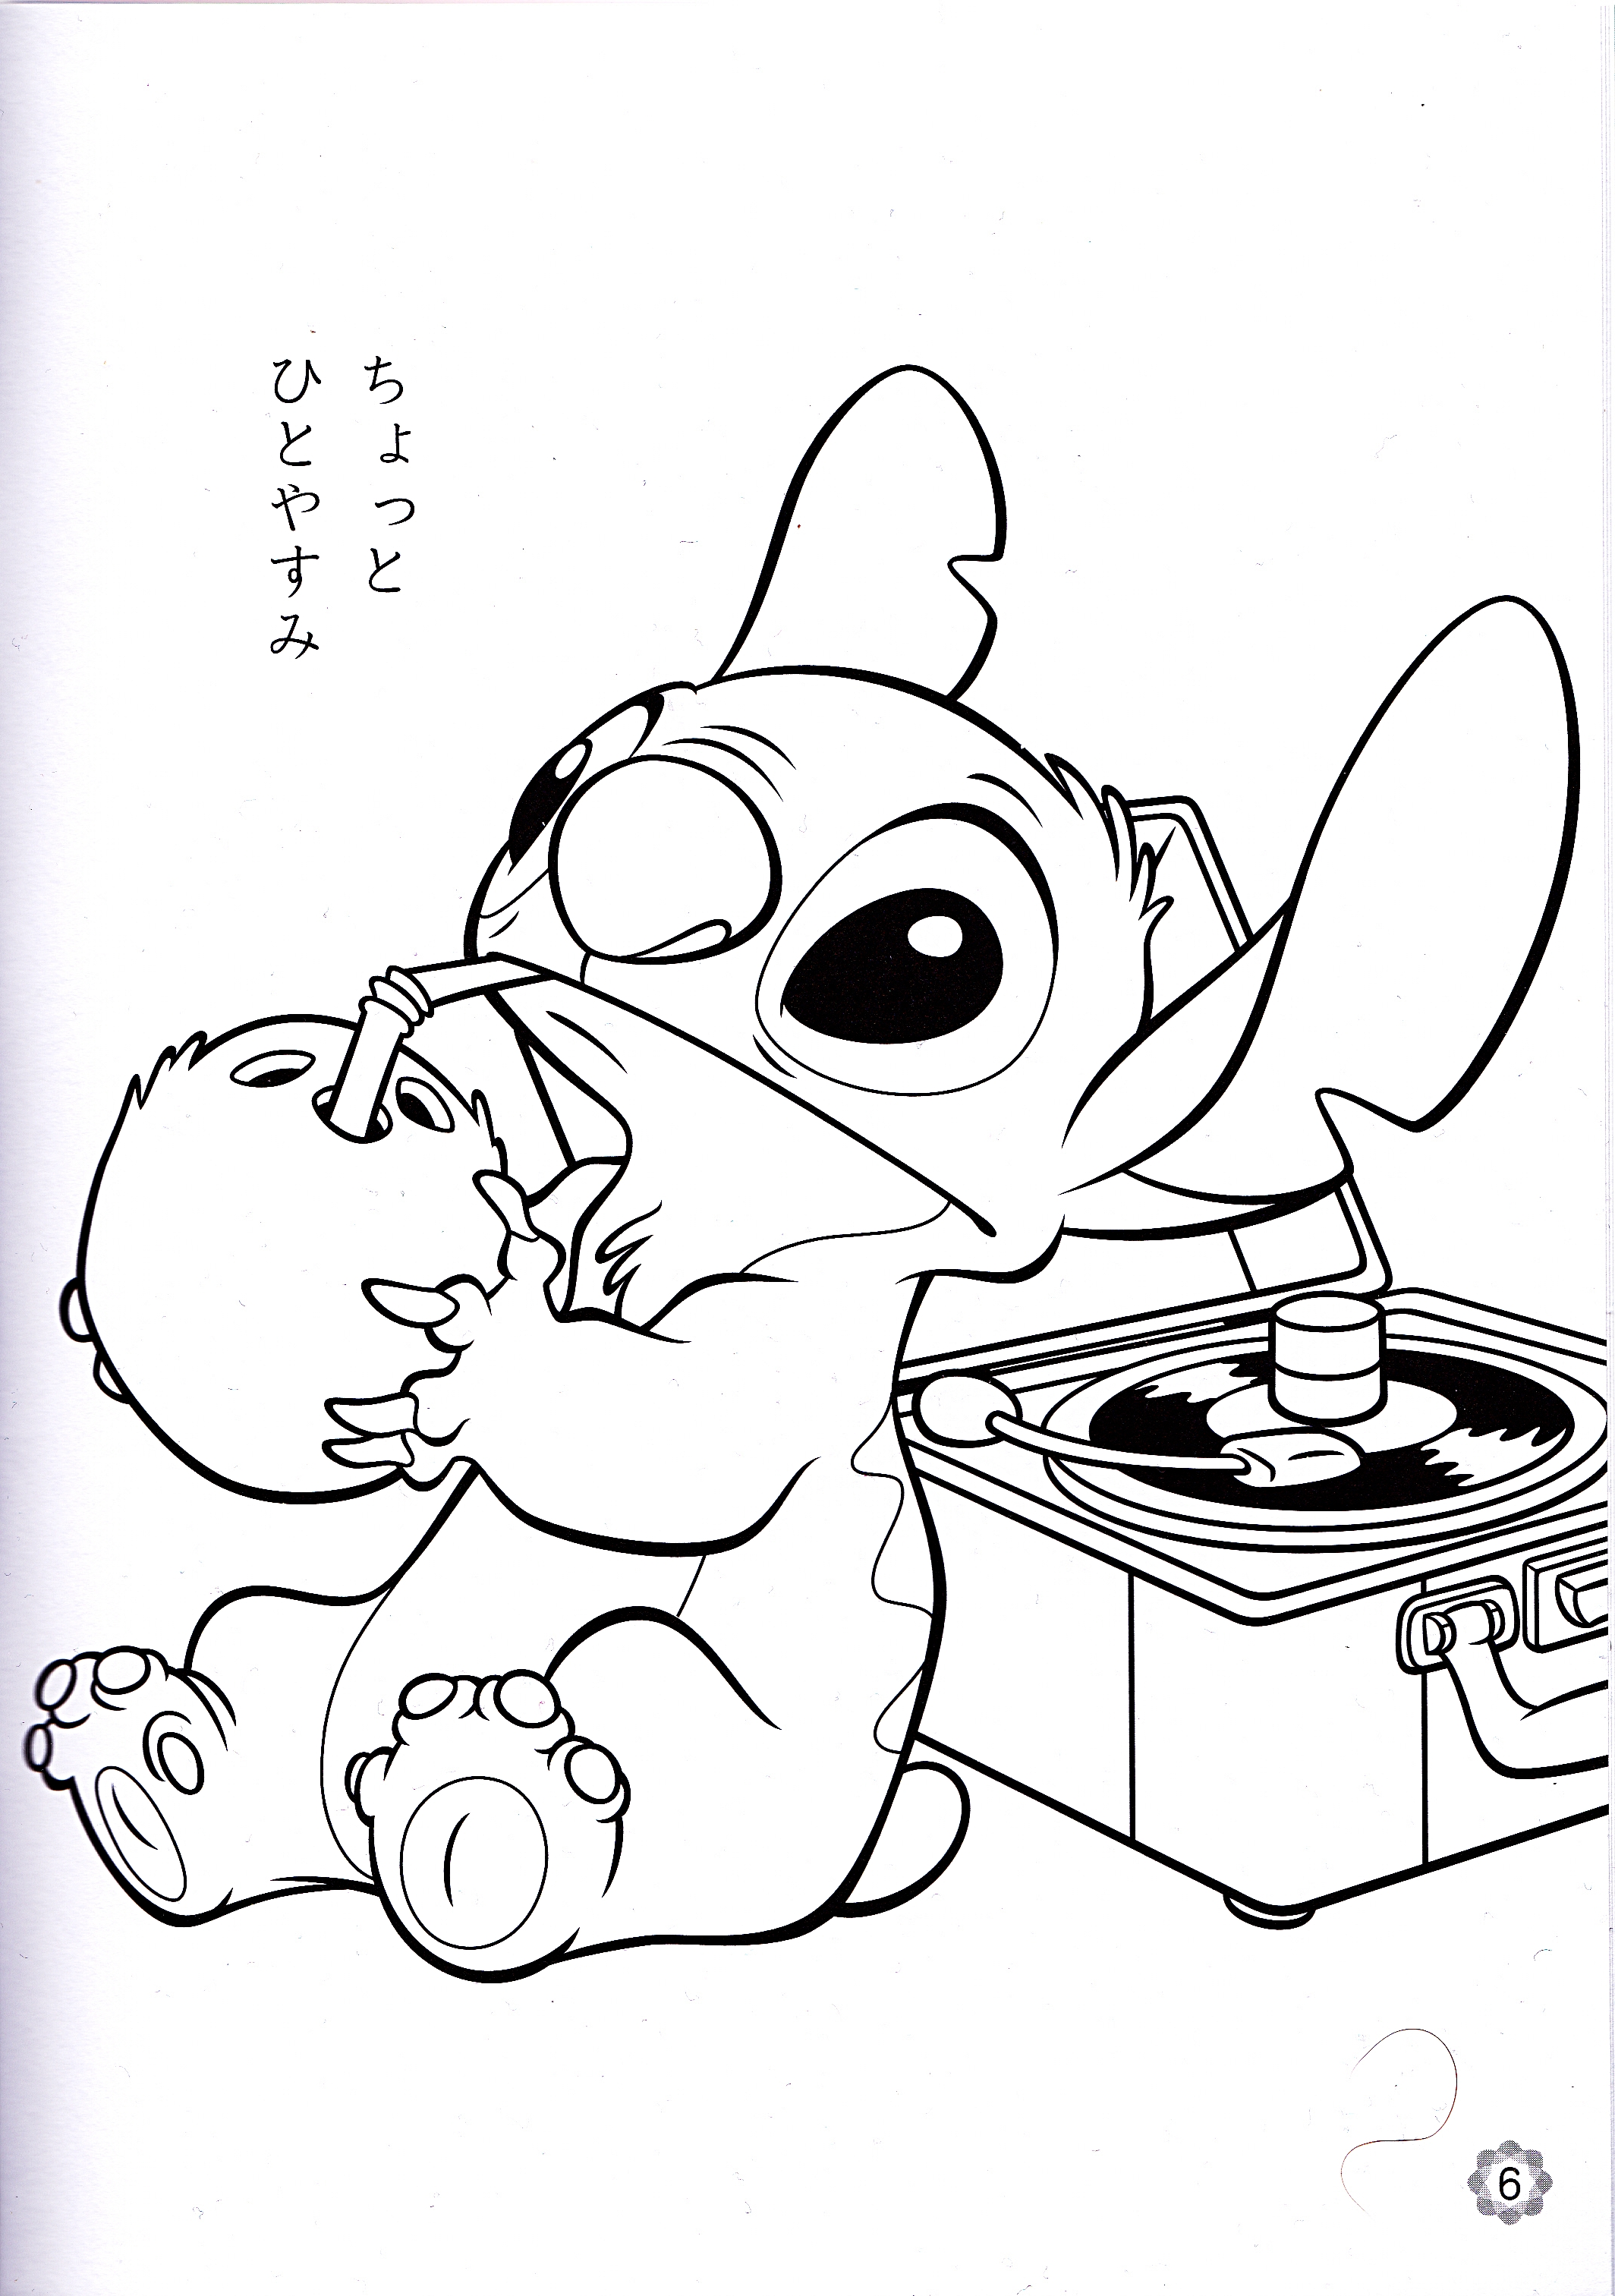 coloring pages characters Walt Disney Characters images Walt Disney Coloring Pages   Stitch  coloring pages characters